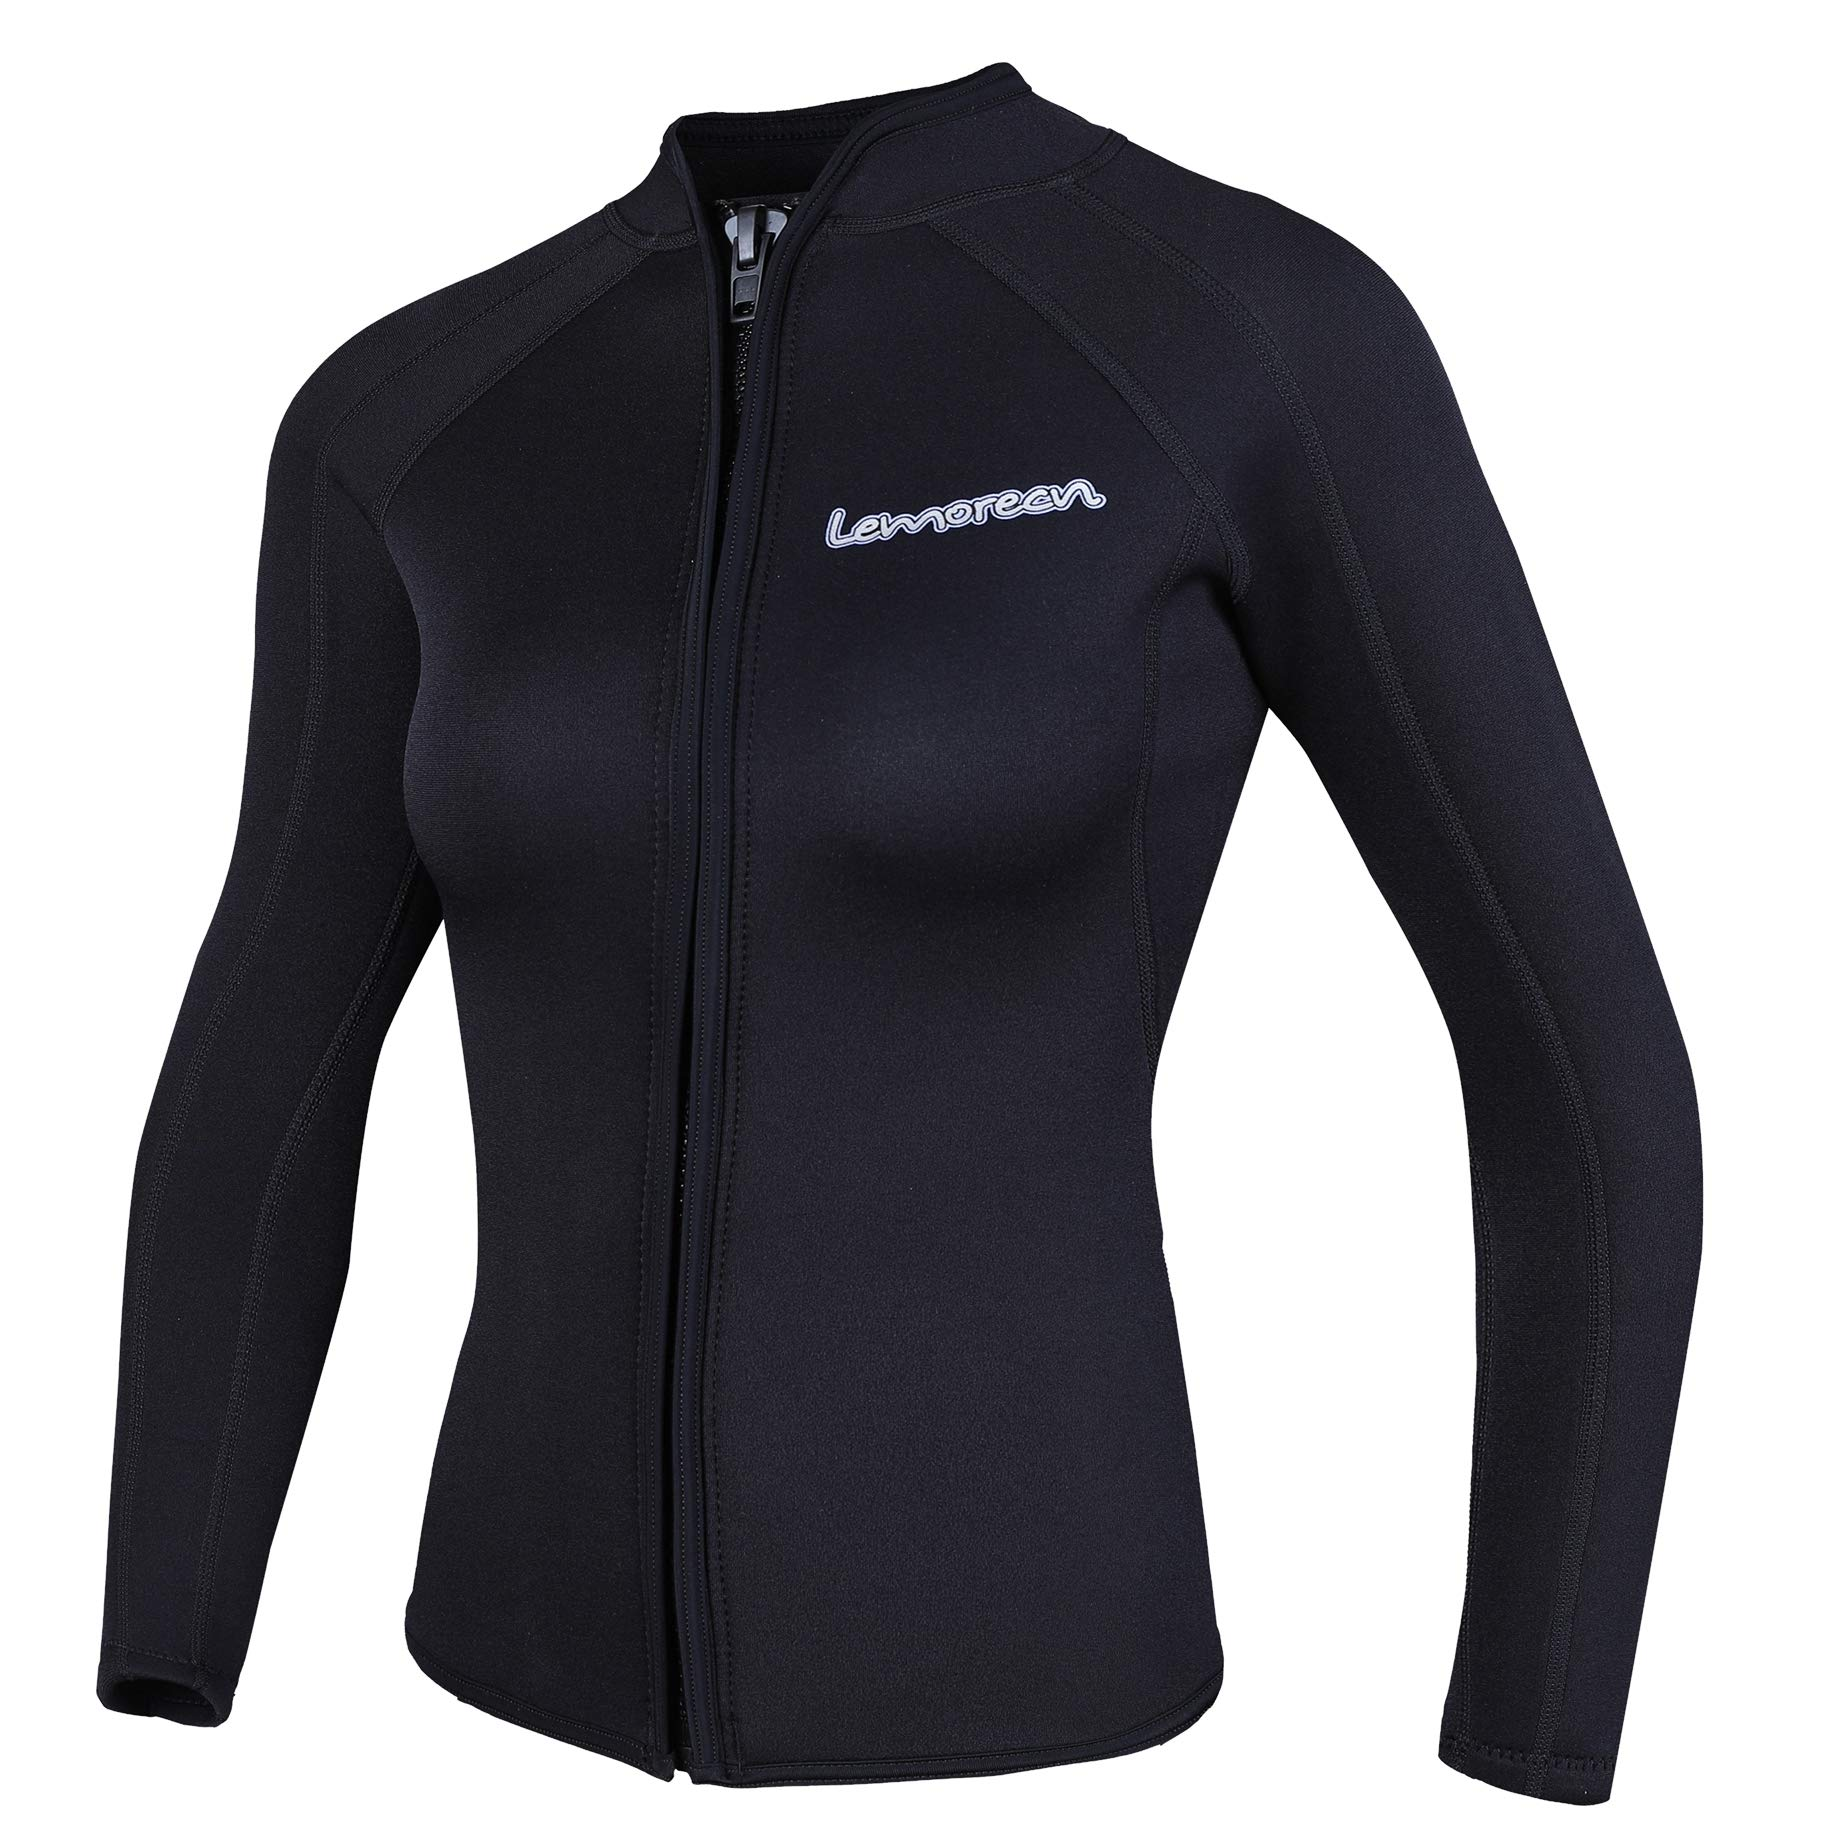 Lemorecn Women's 3mm Wetsuits Jacket Long Sleeve Neoprene Wetsuits Top (2041black12) by Lemorecn